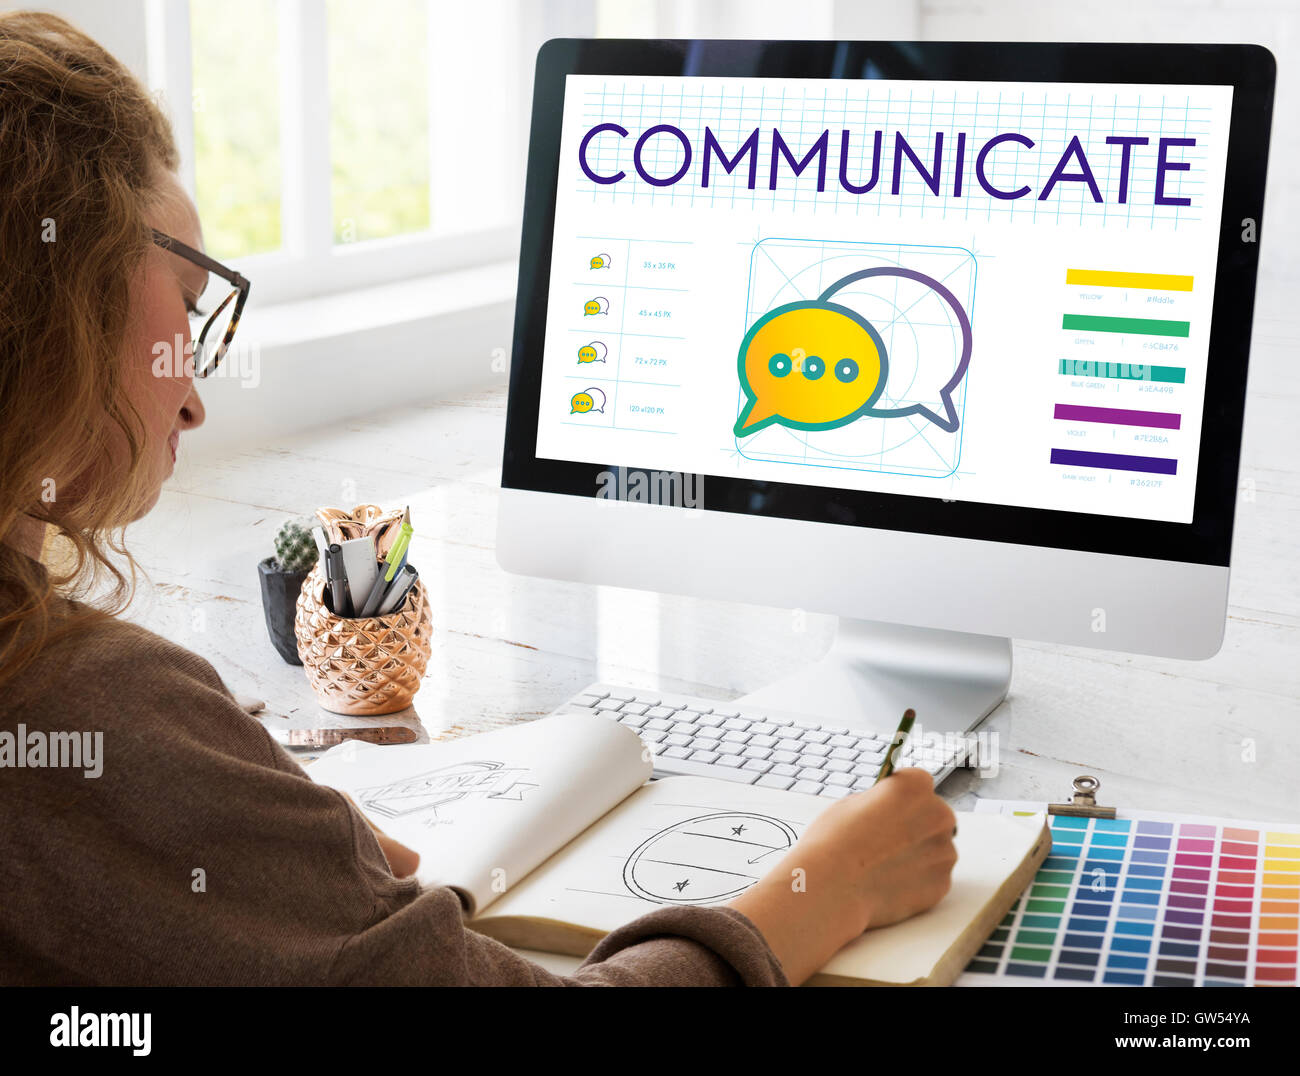 Communicate Trends Interact Connection Concept - Stock Image